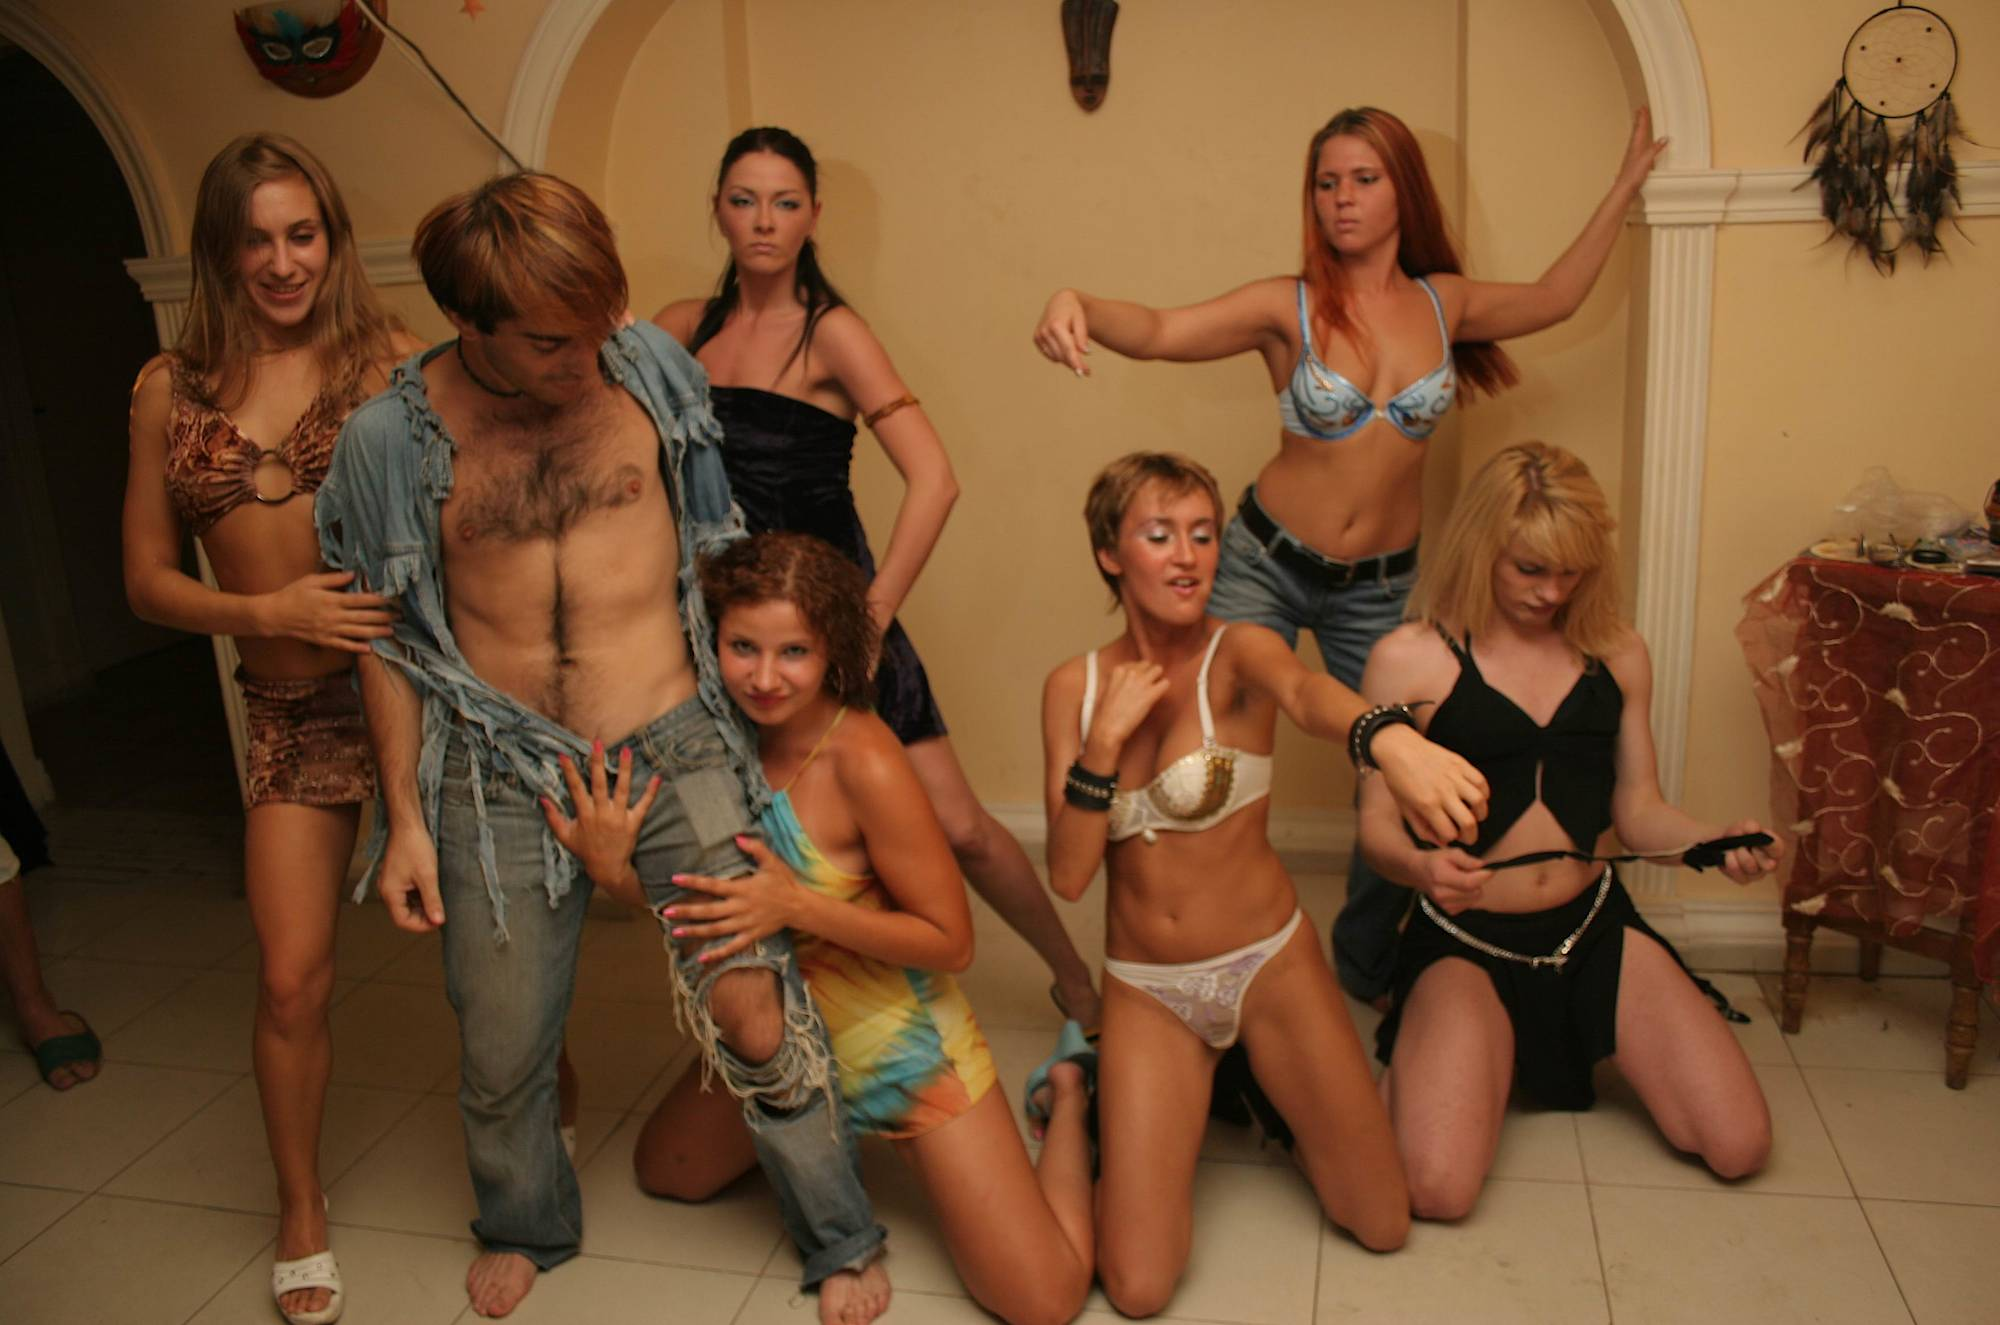 Xxx group orgies pictures